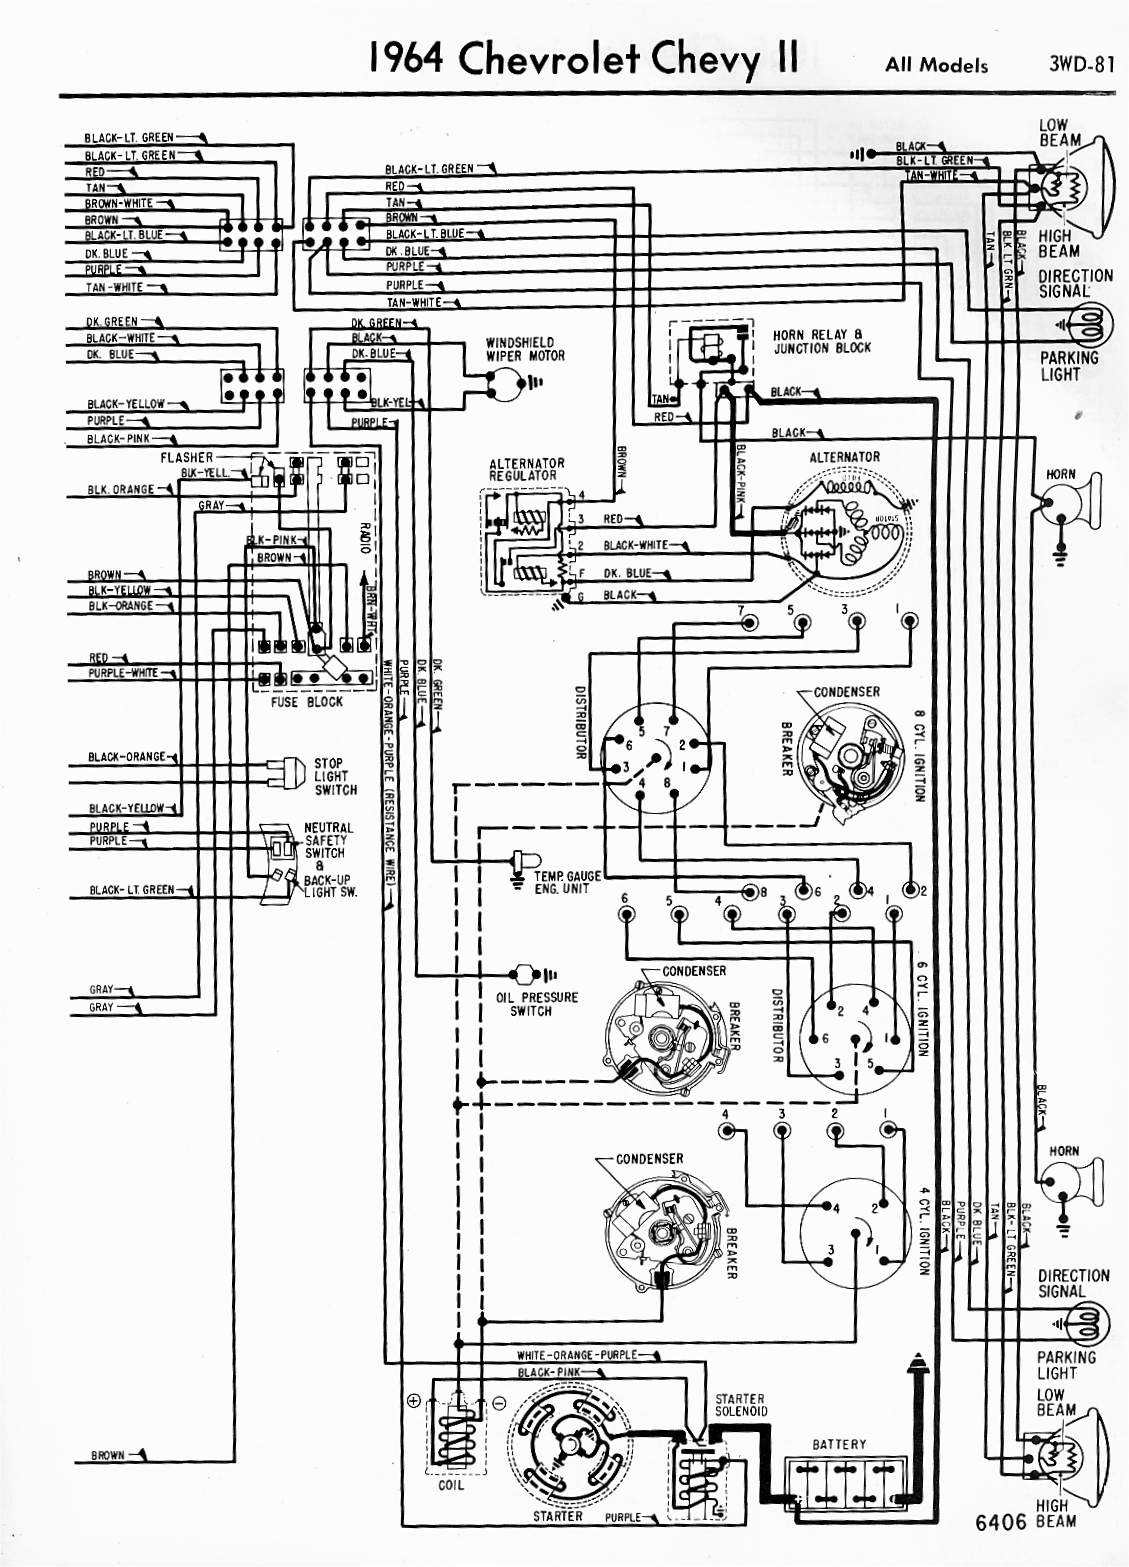 hight resolution of 1964 gmc truck electrical system wiring diagram wiring library 1964 chevy ii all models